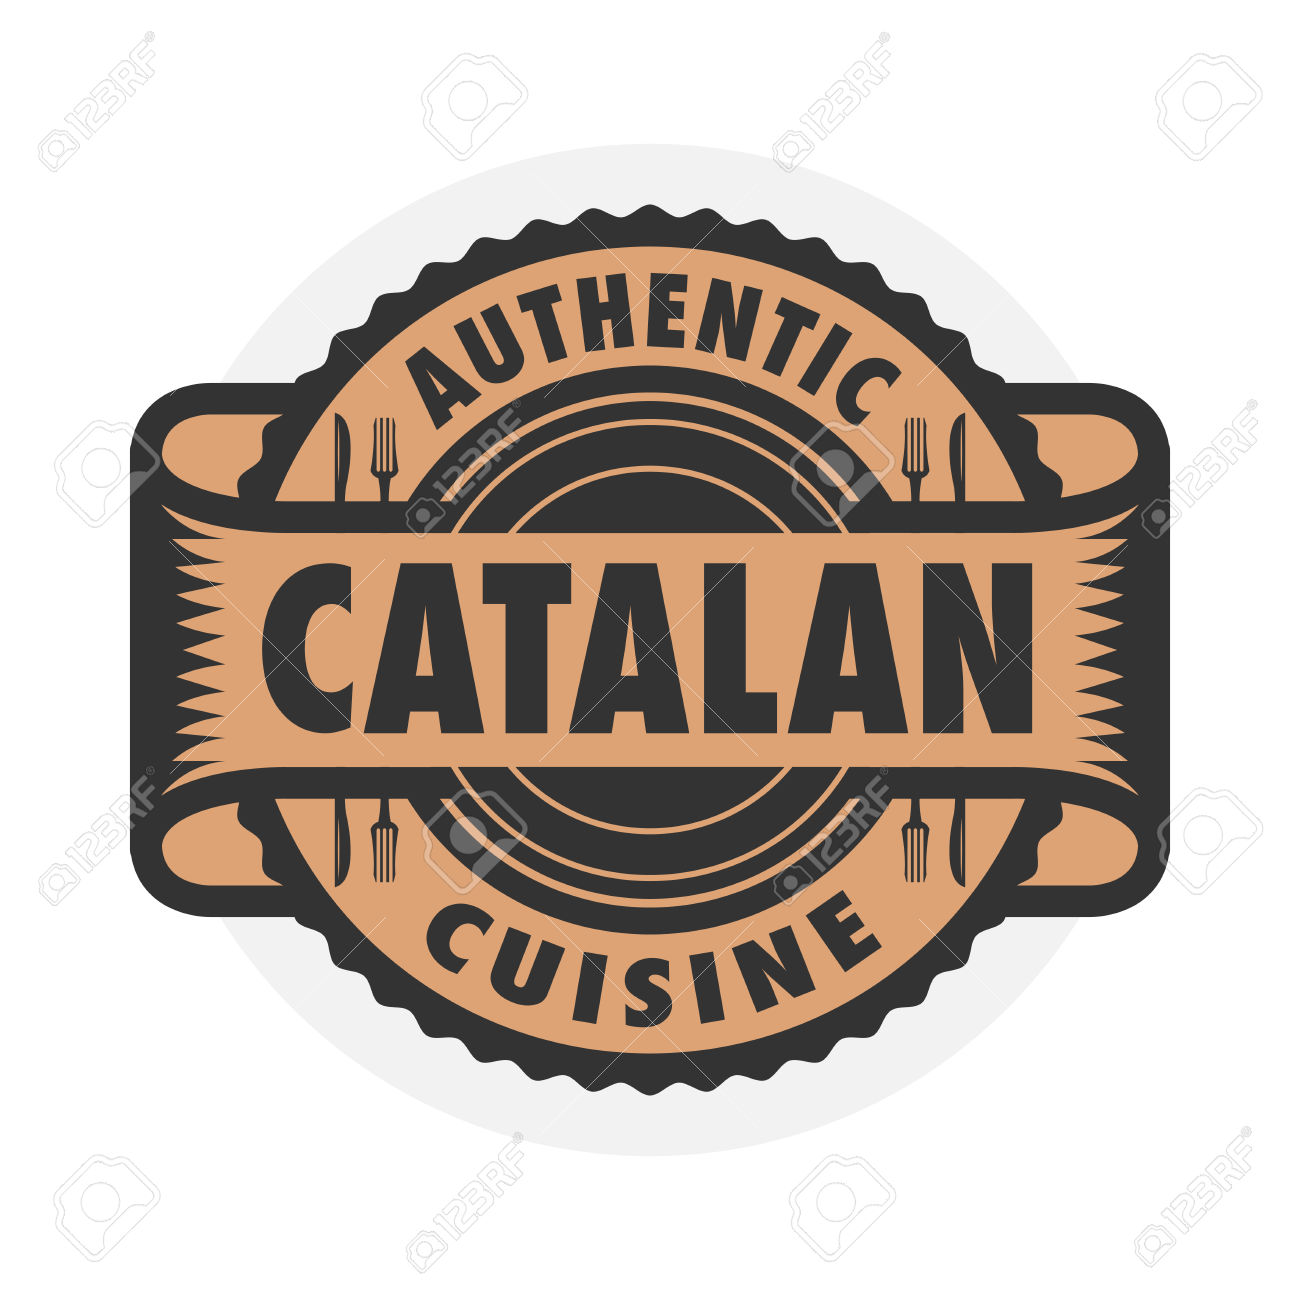 755 Catalan Stock Vector Illustration And Royalty Free Catalan Clipart.